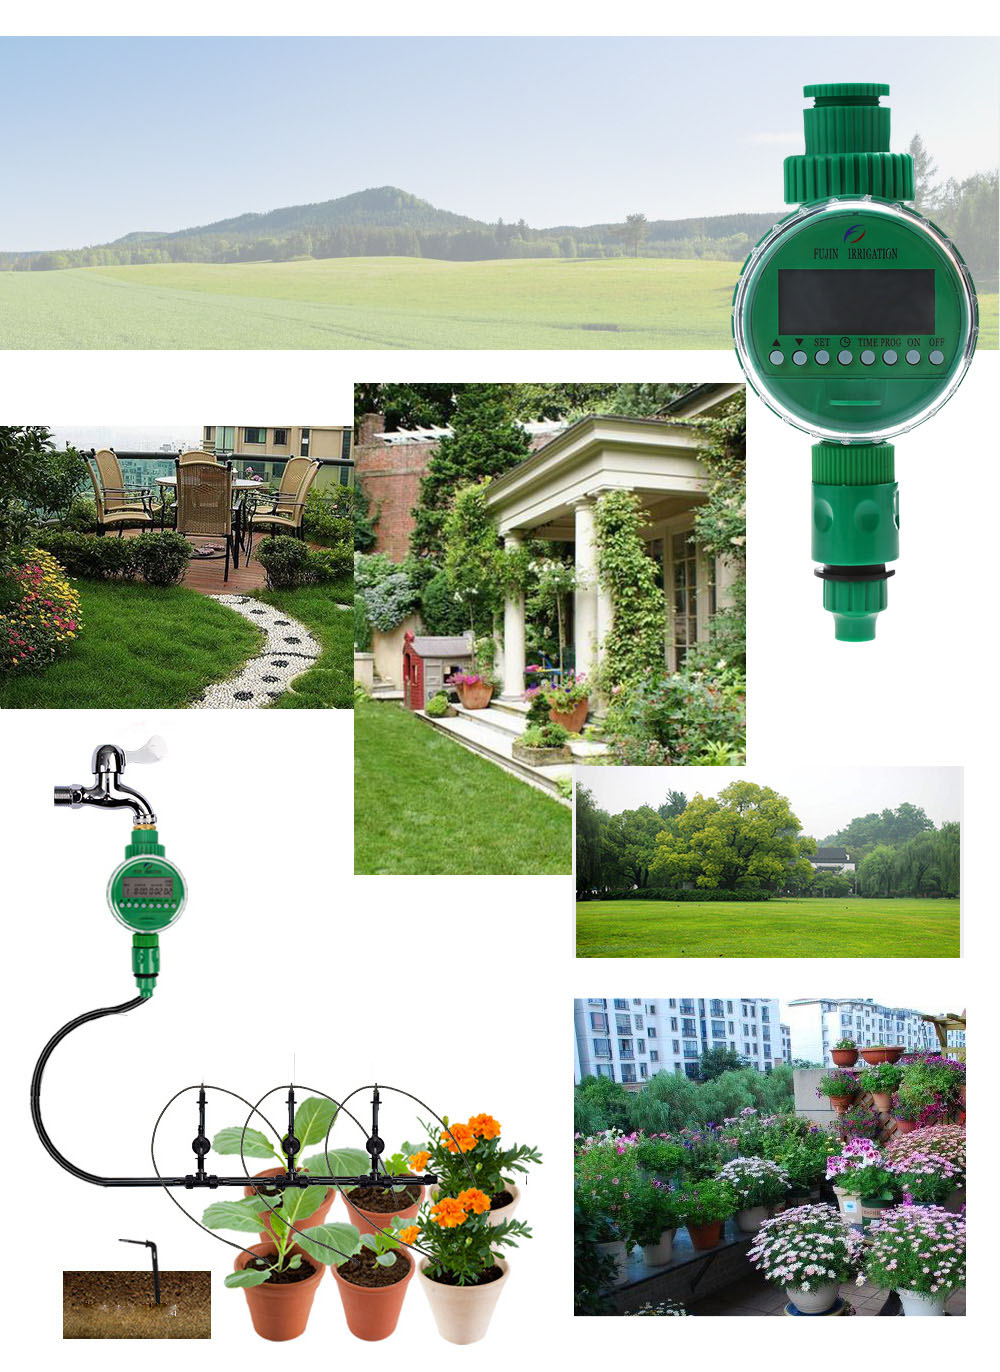 LCD Display Home Ball Valve Automatic Water Timer Garden Irrigation Controller